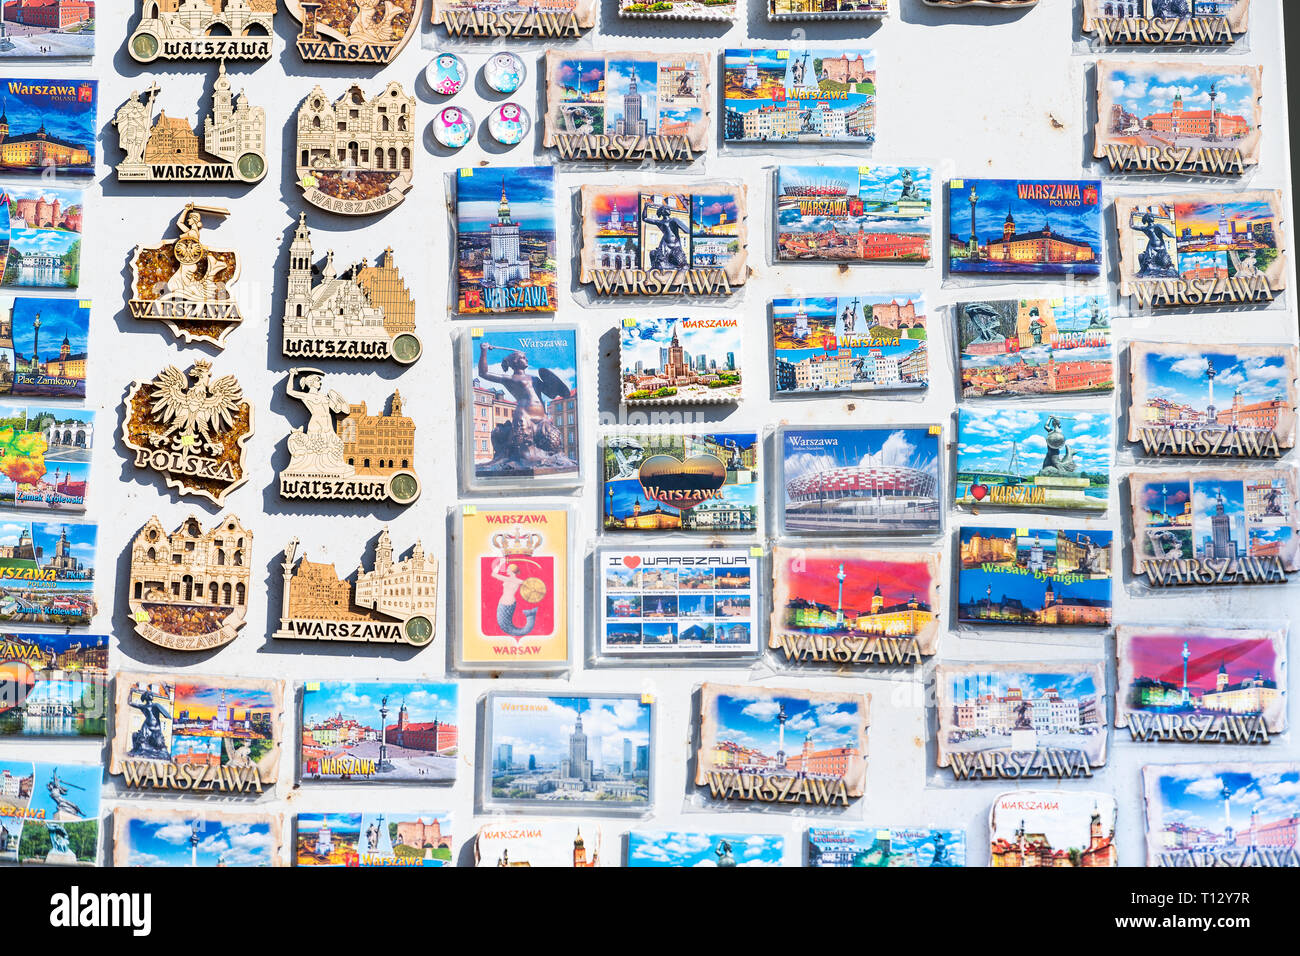 Warsaw, Poland - August 22, 2018: Many souvenirs colorful vibrant colors magnets for refrigerator on display in shopping street market Stock Photo